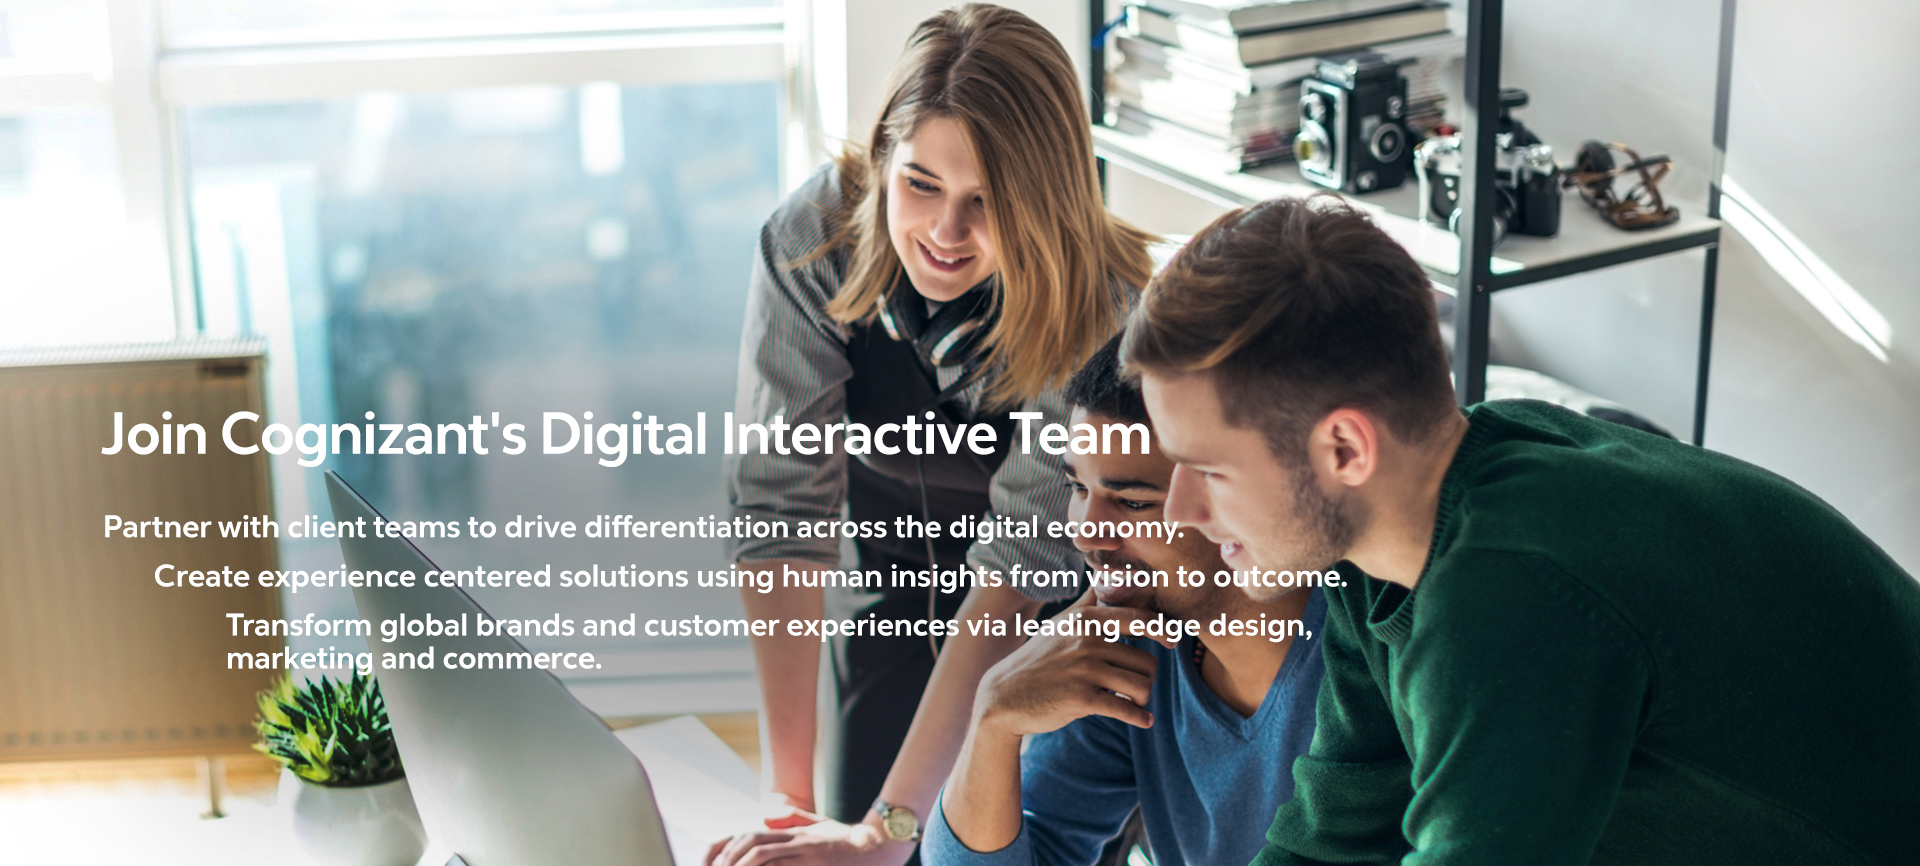 Our digital interactive team works behind the scenes to make your project shine